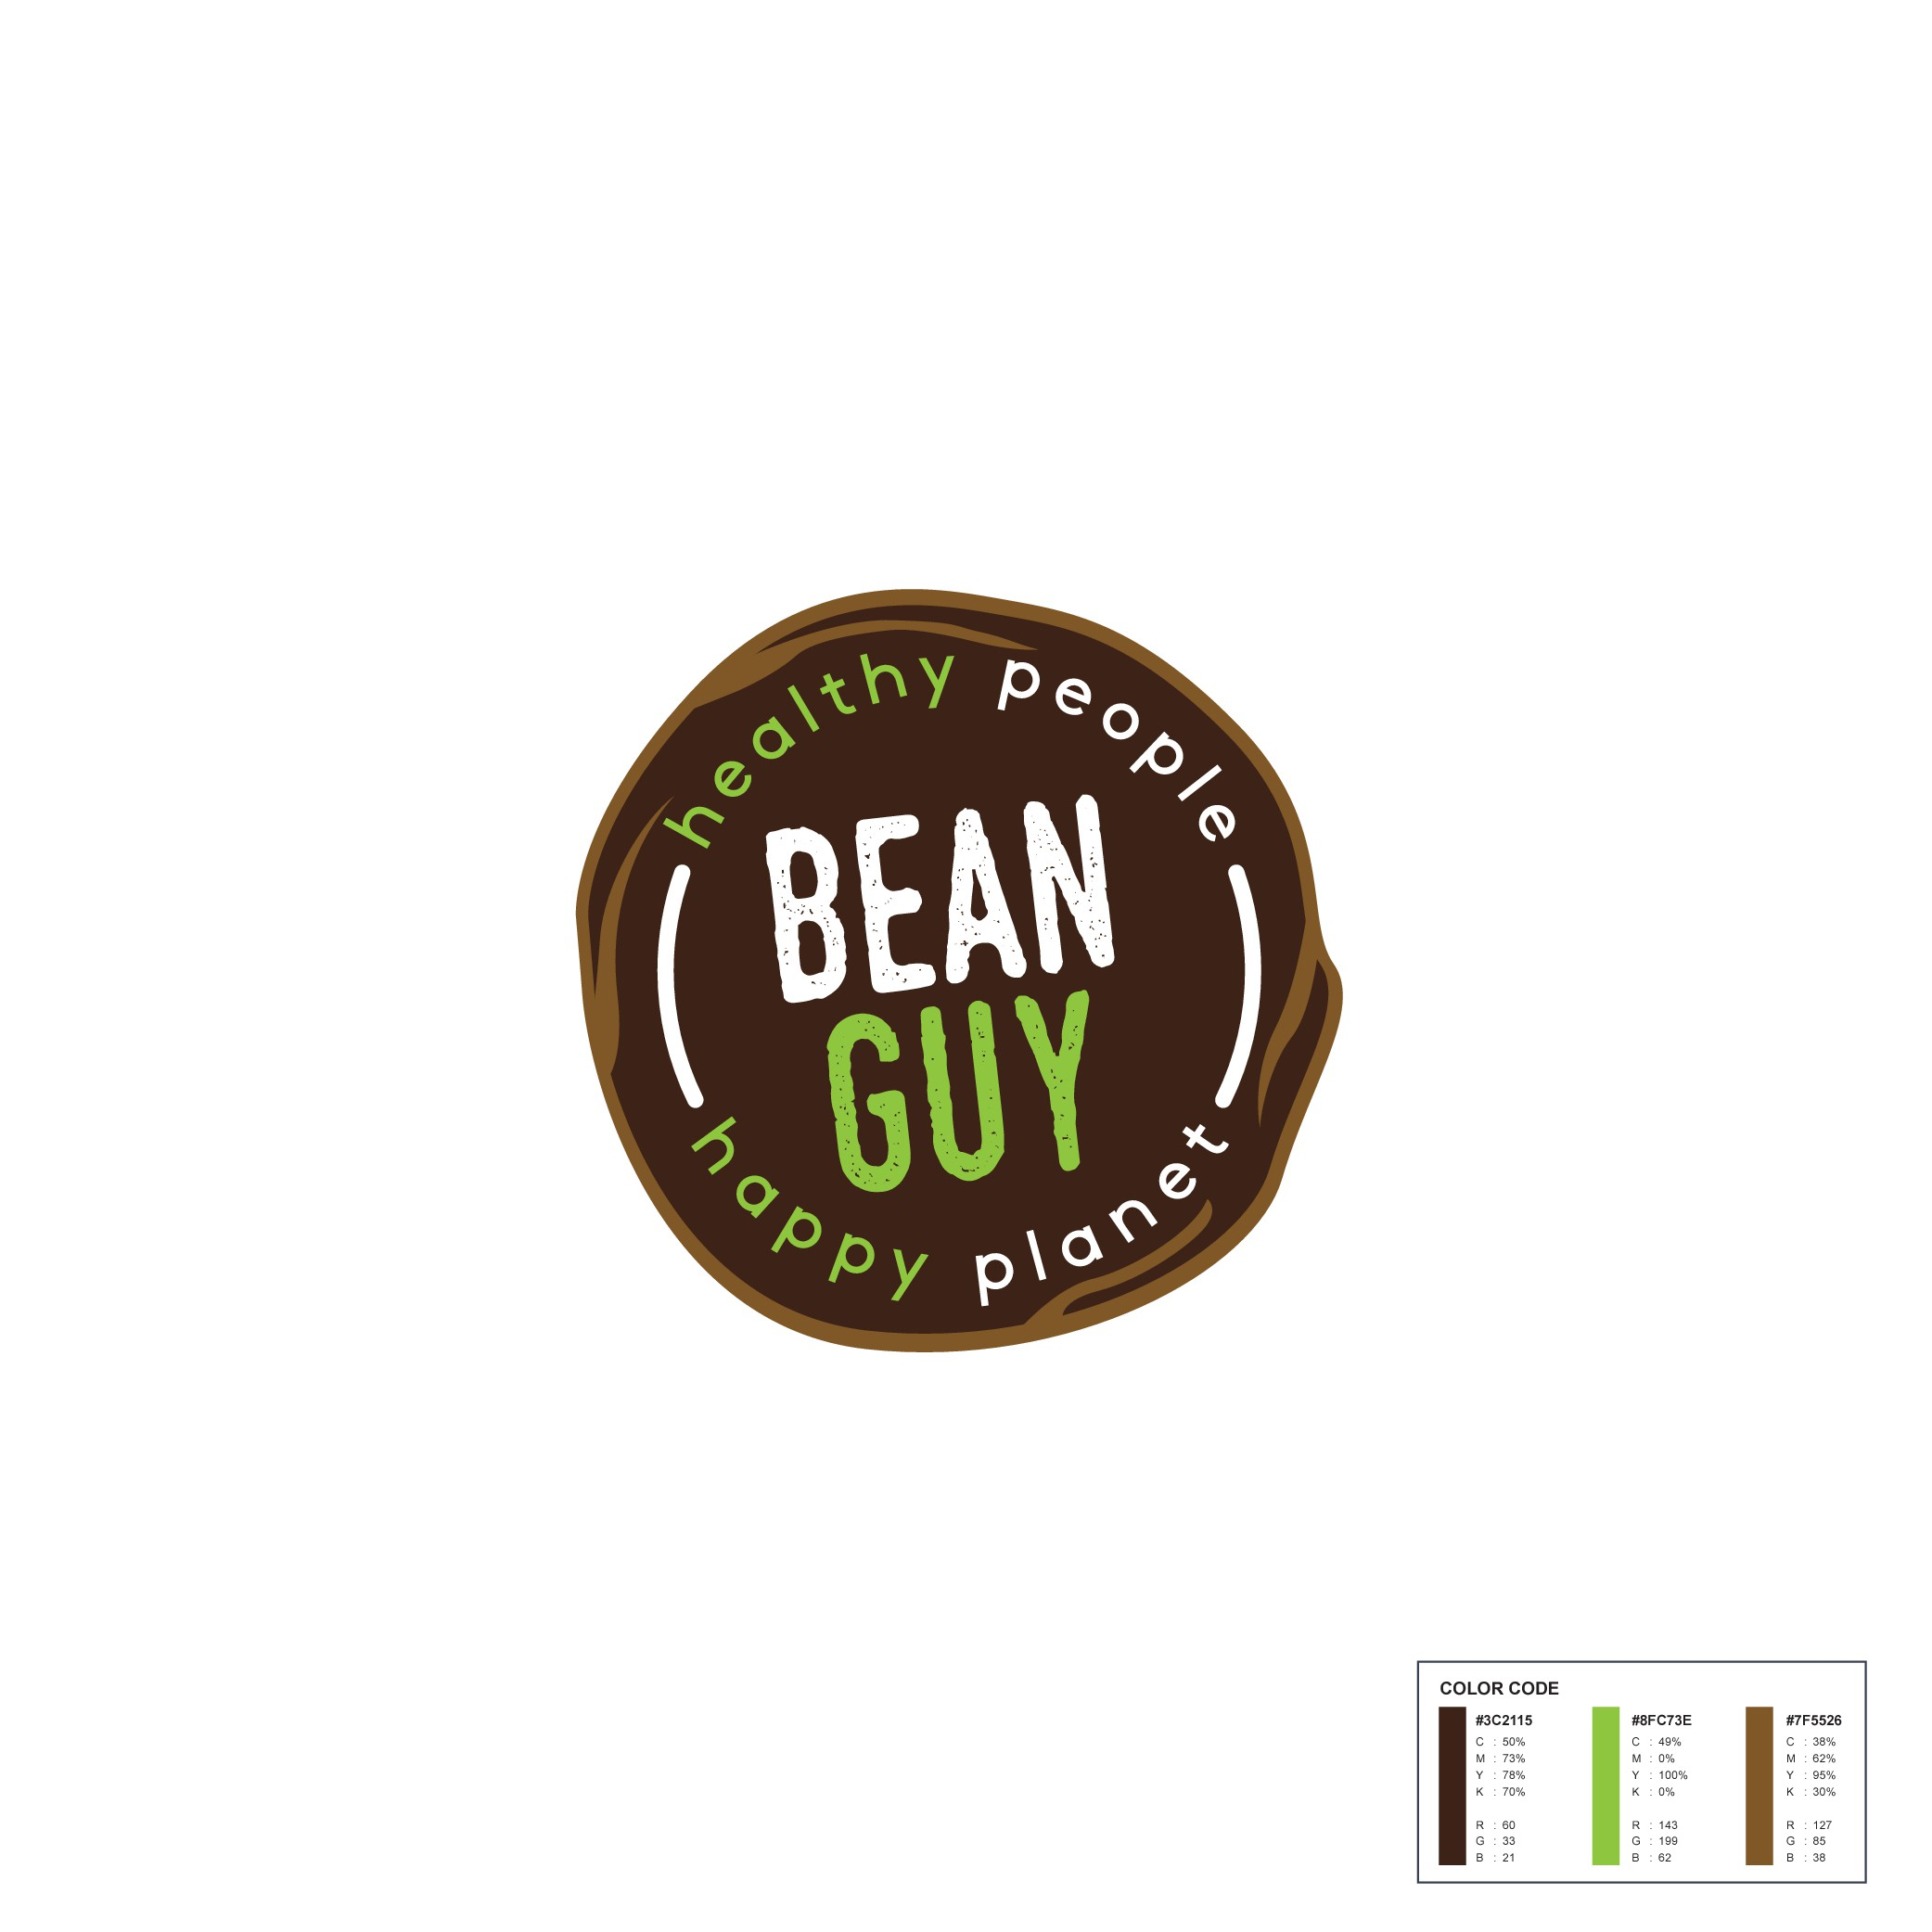 Bean Guy looking for an identity